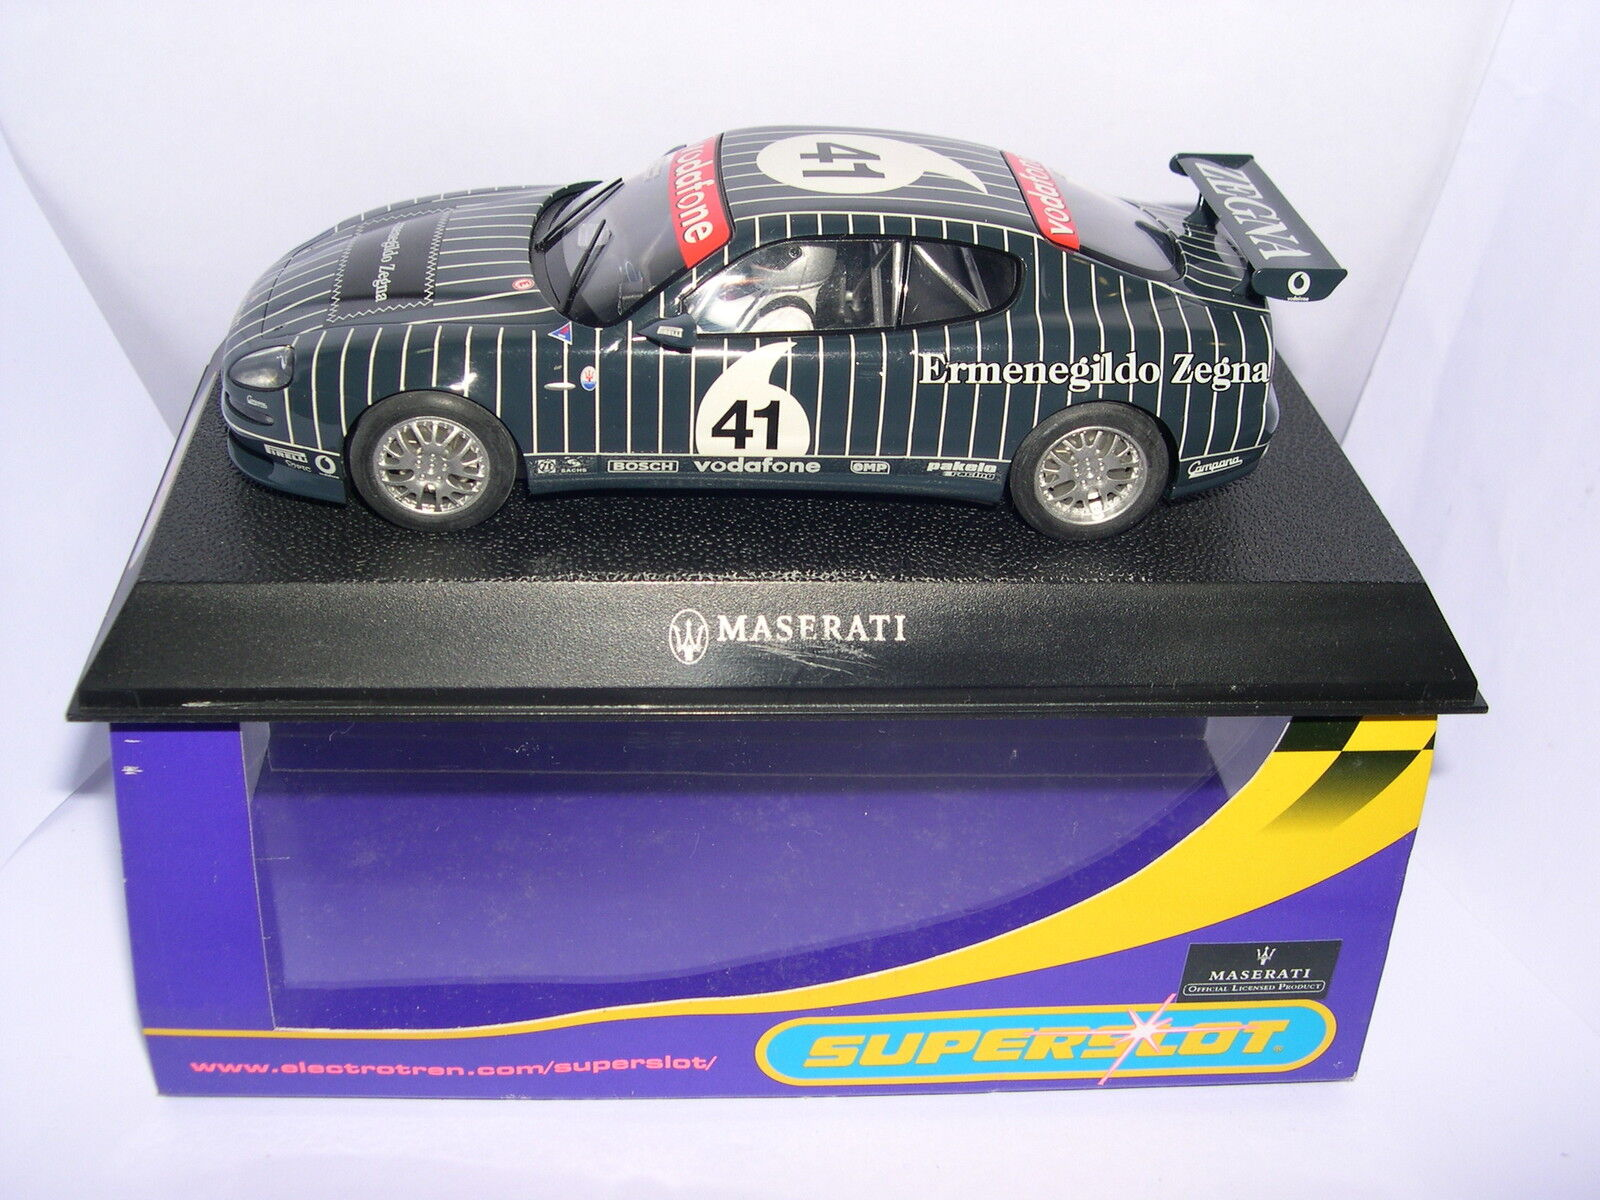 Superslot H2505 Maserati Coupe Comicorsa Trophy 2003 Zegna Scalcextric UK MB